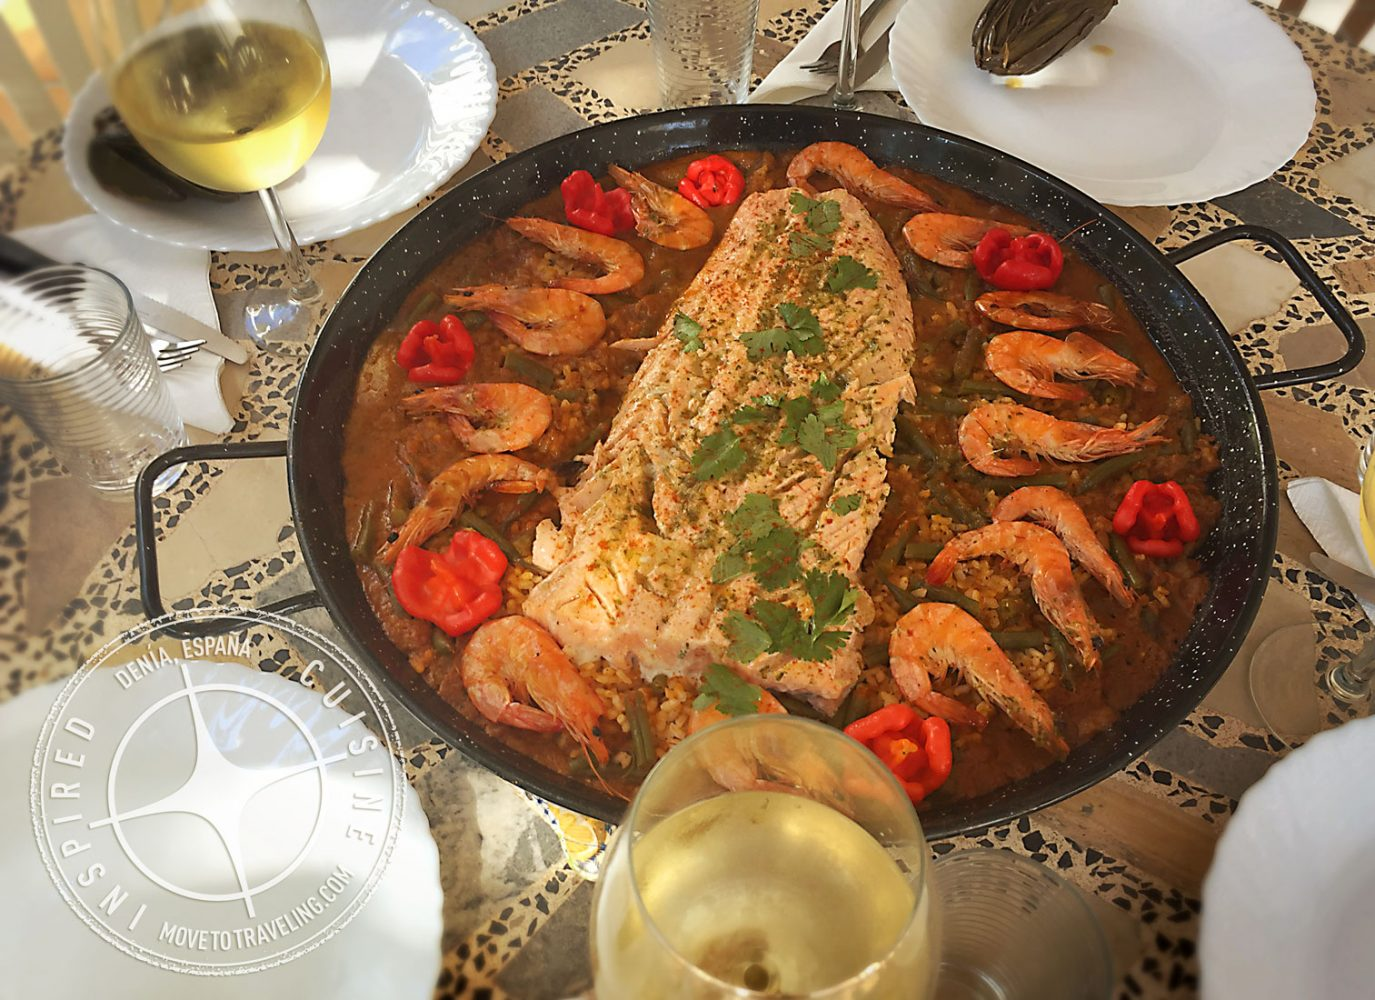 Recipe for Seafood Paella with Salmon – Arroz de Viernes